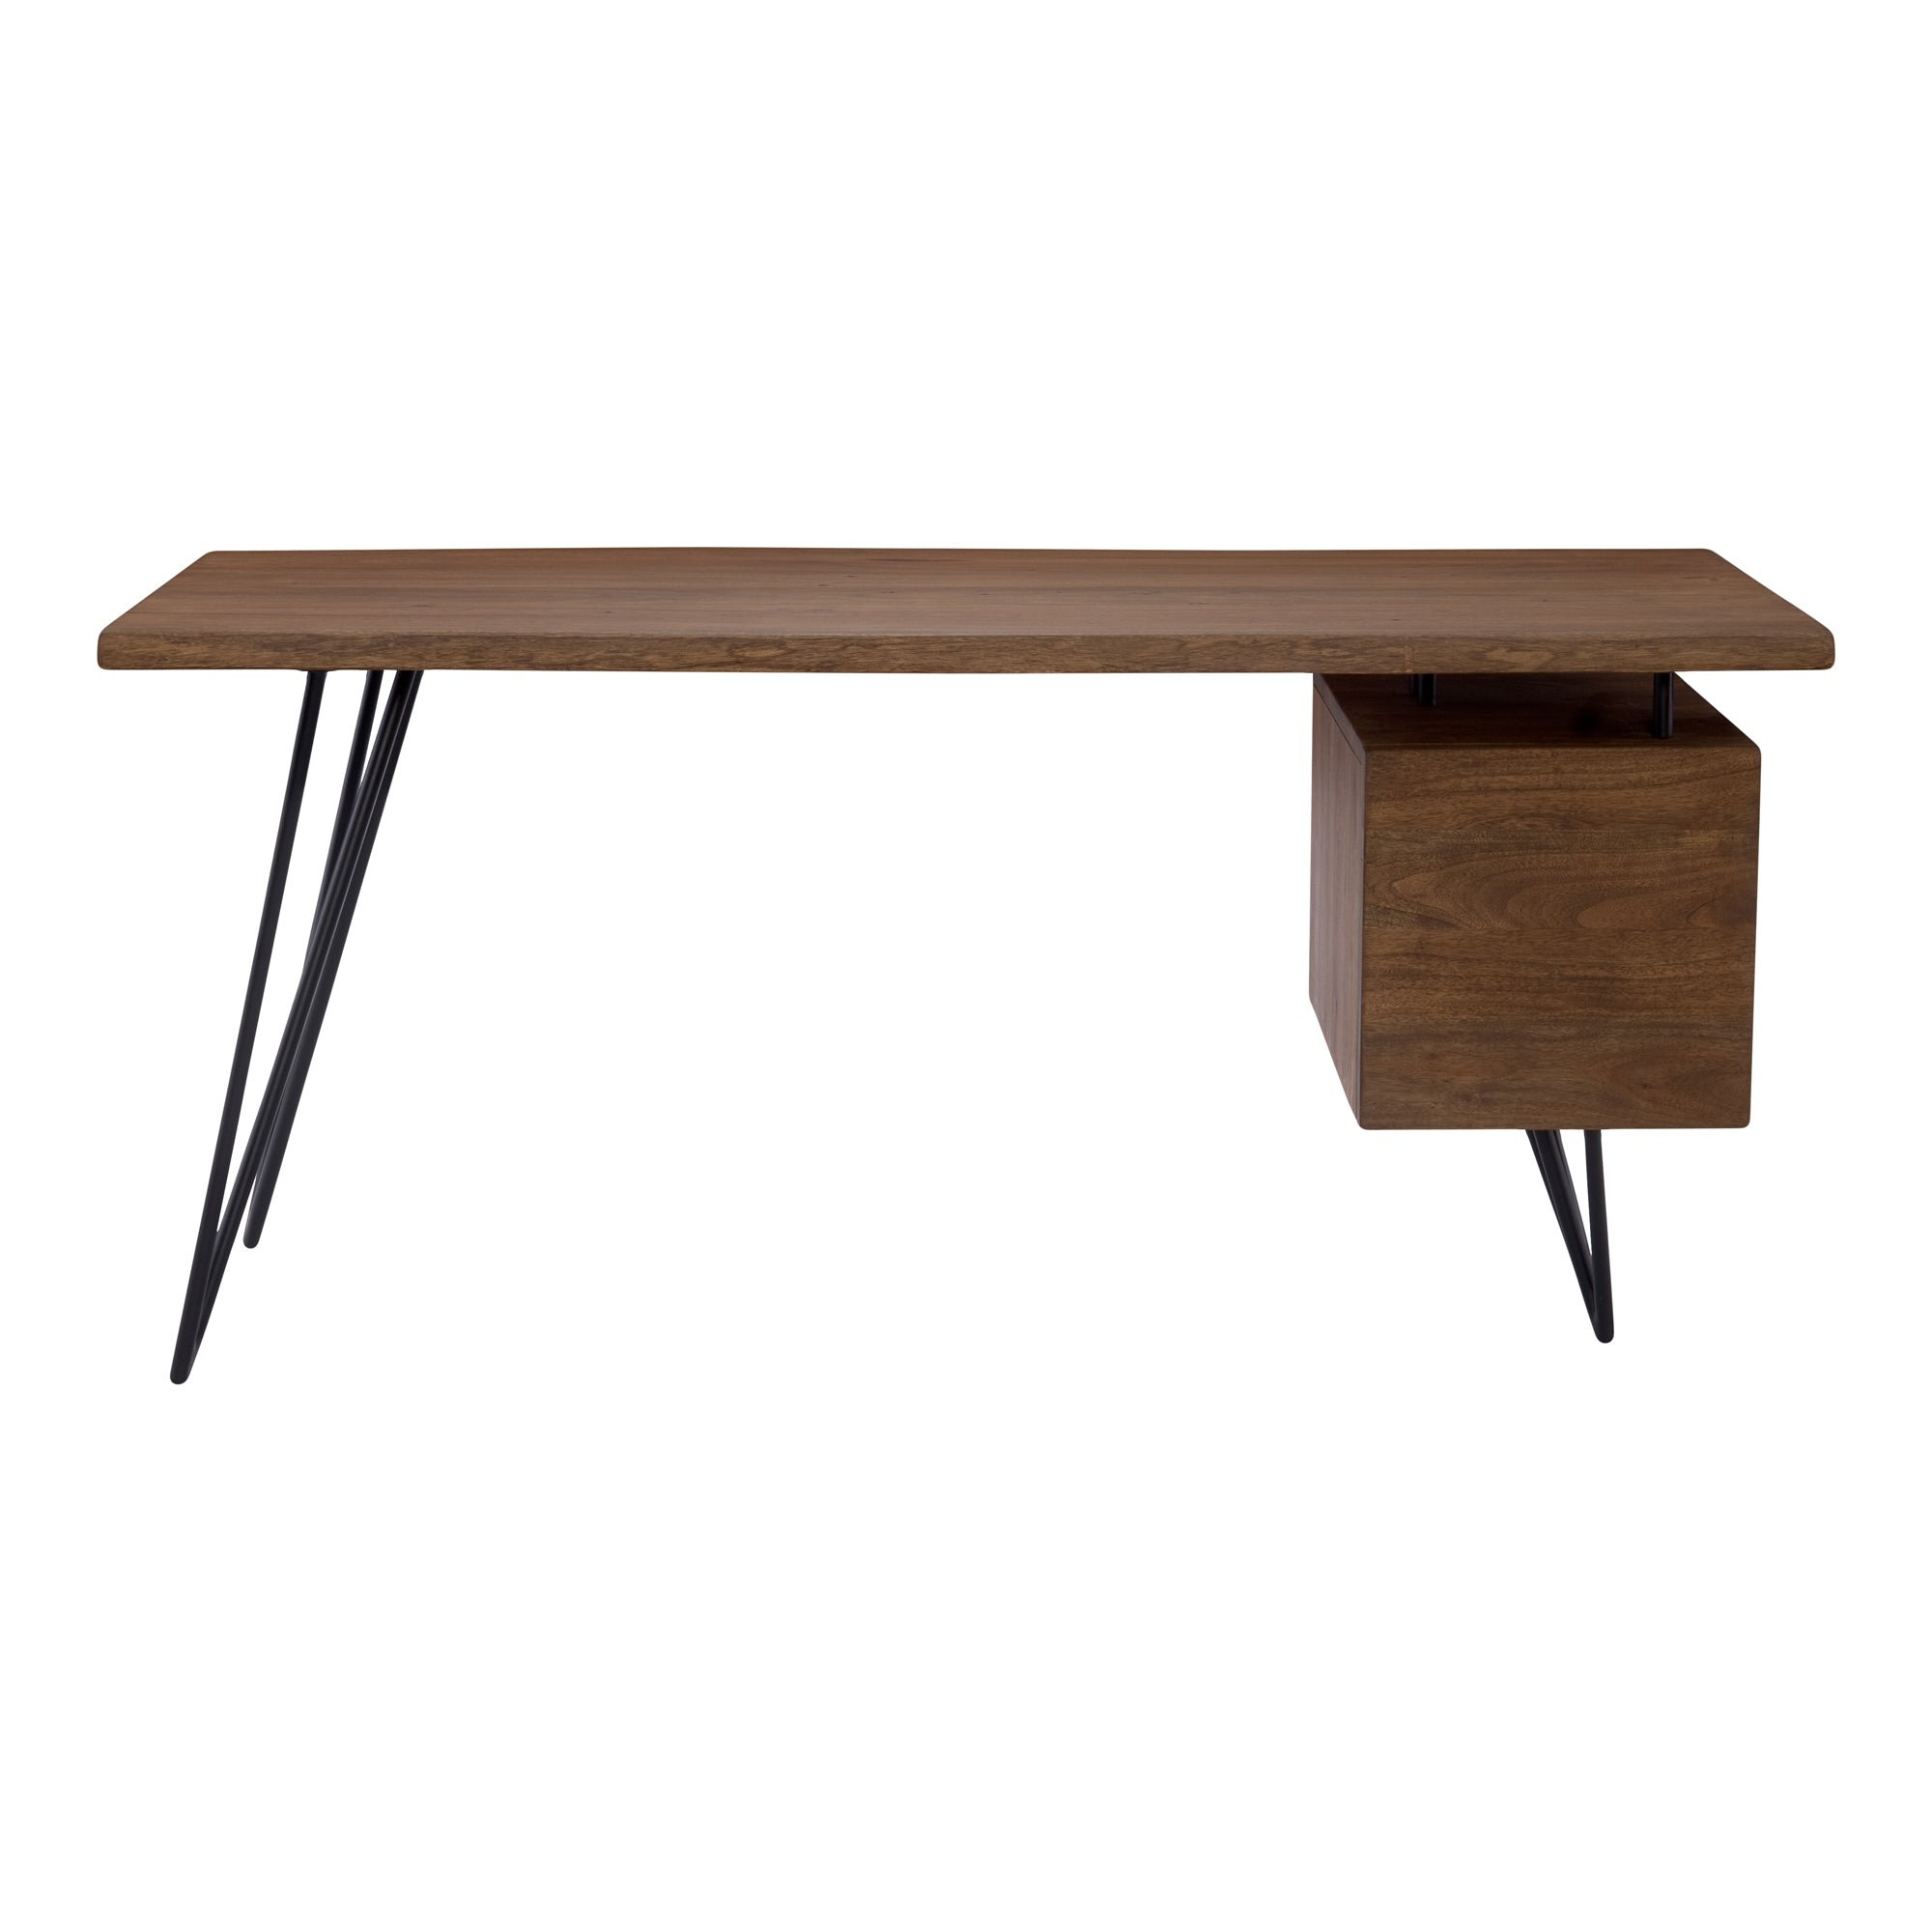 NAILED DESK, Brown - Tops-Dress